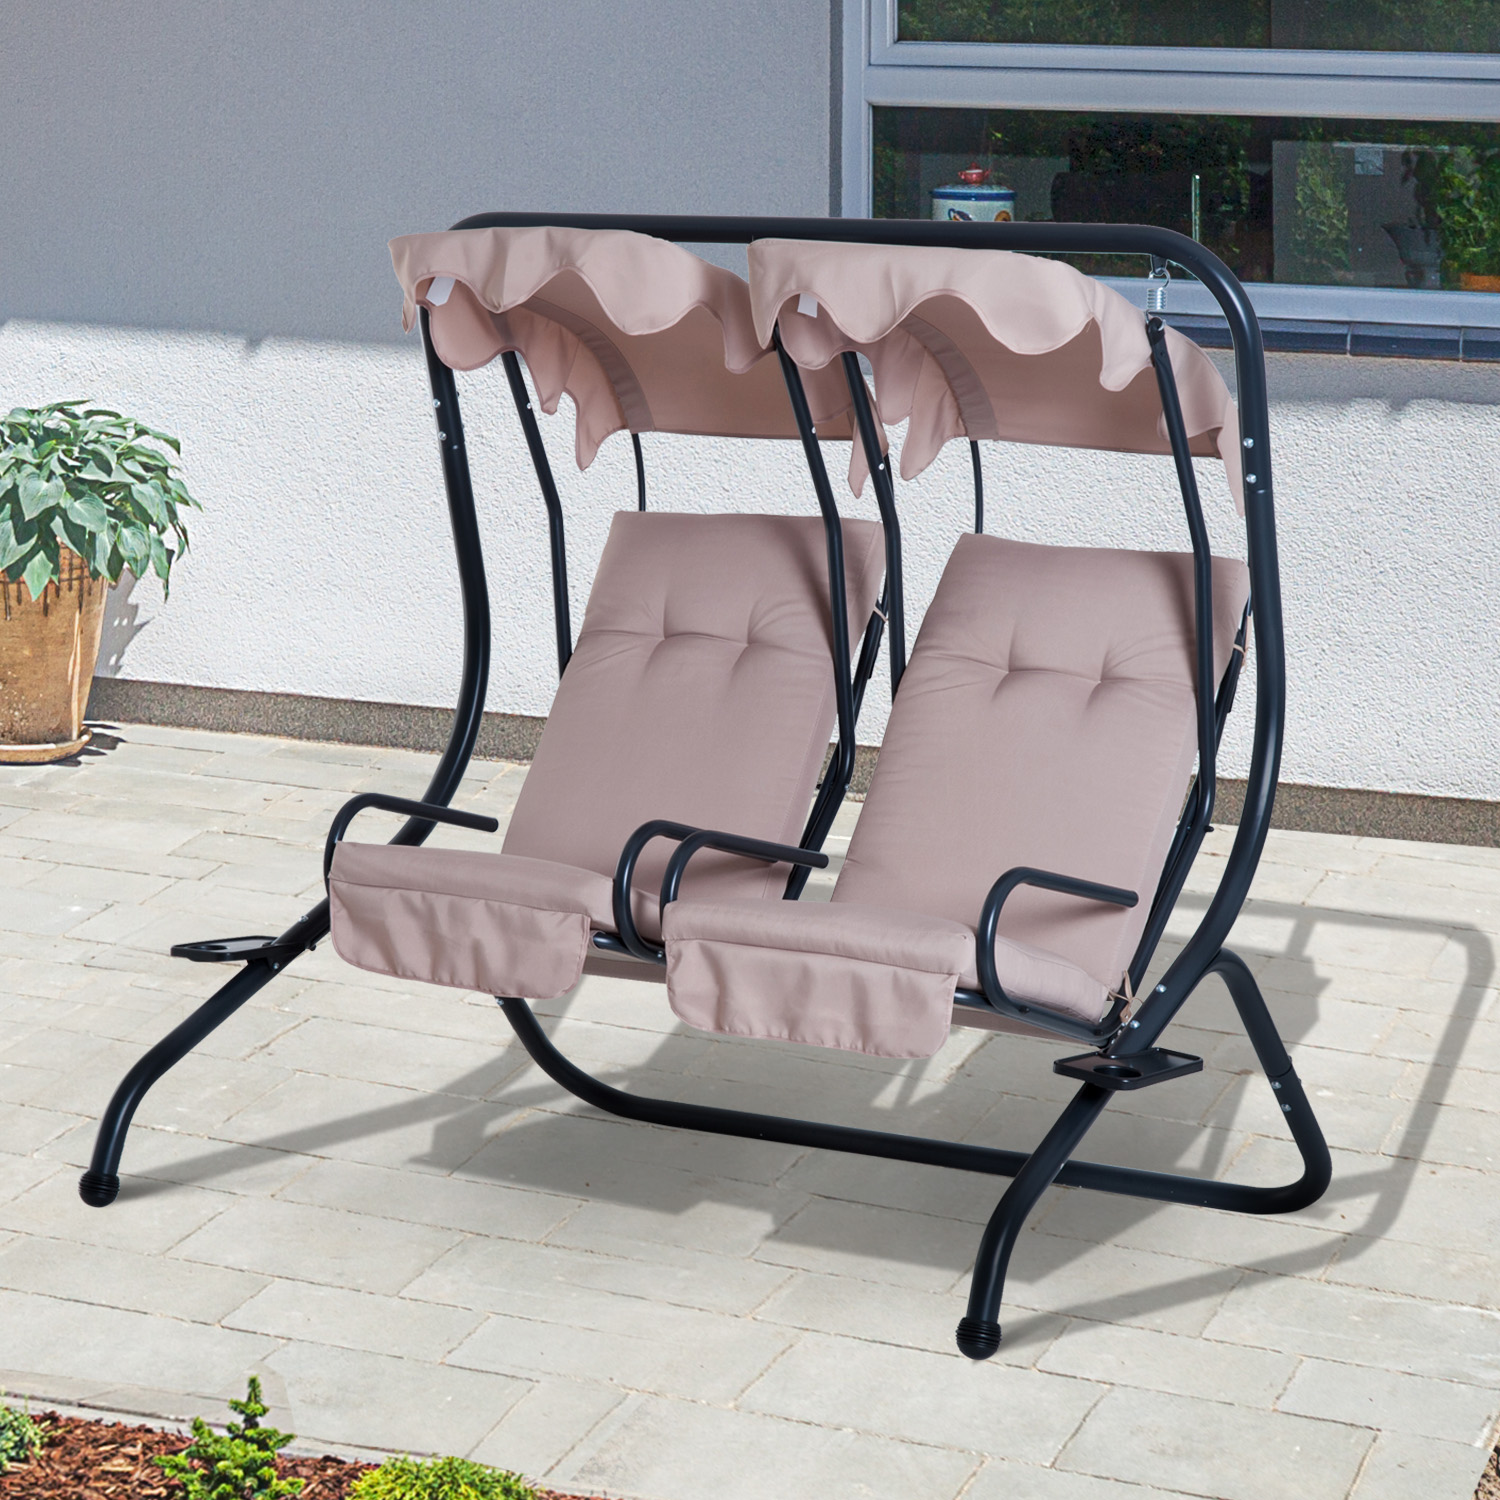 Grey Headrests and Removable Sun Shade Canopy Outsunny Canopy Swing Modern Outdoor Relax Chairs w// 2 Separate Chairs